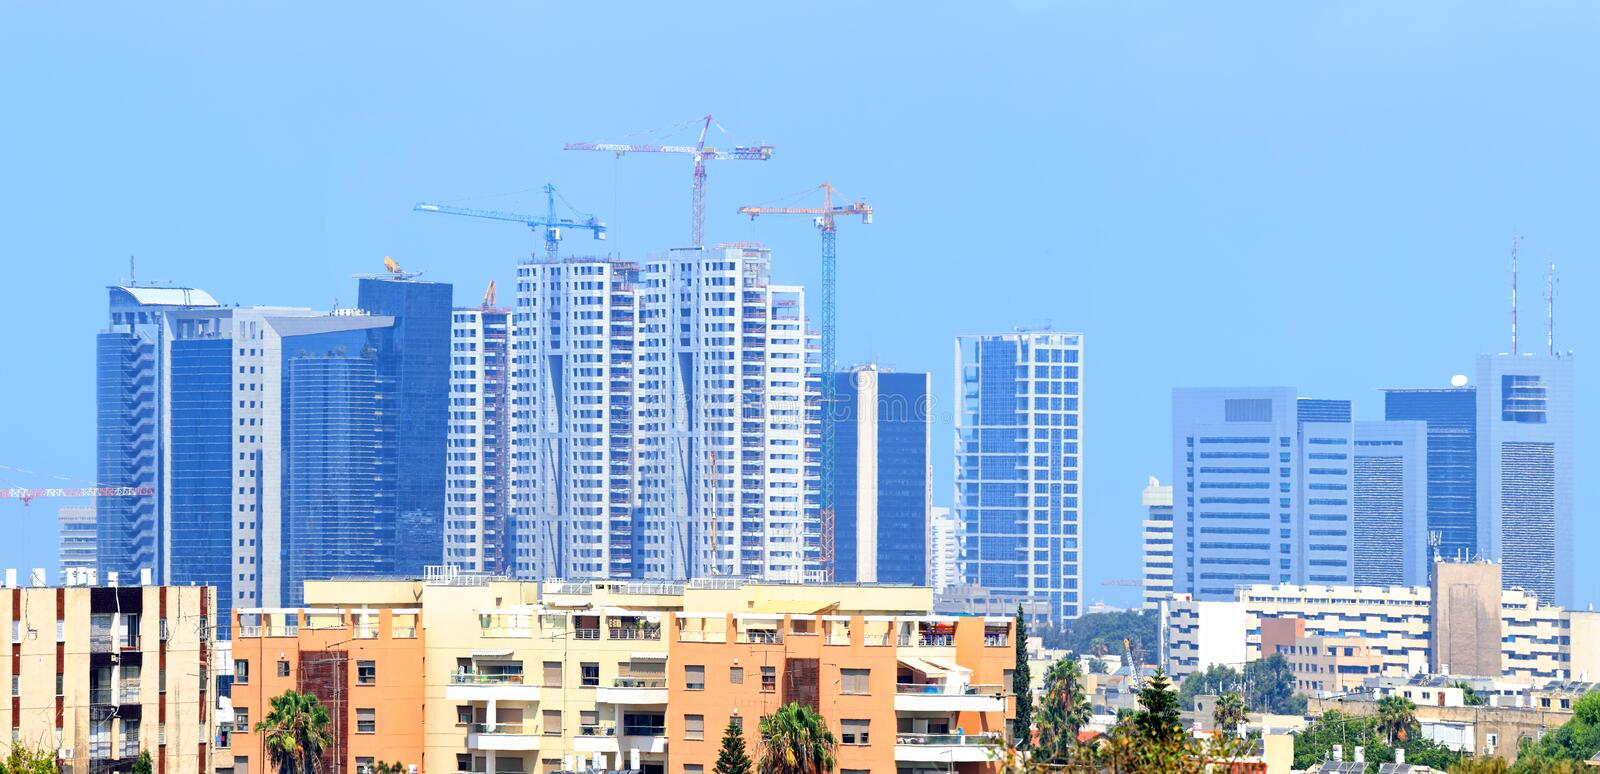 Building of the Blue City. Cityscape of modern city. Tel-Aviv. Israel stock image